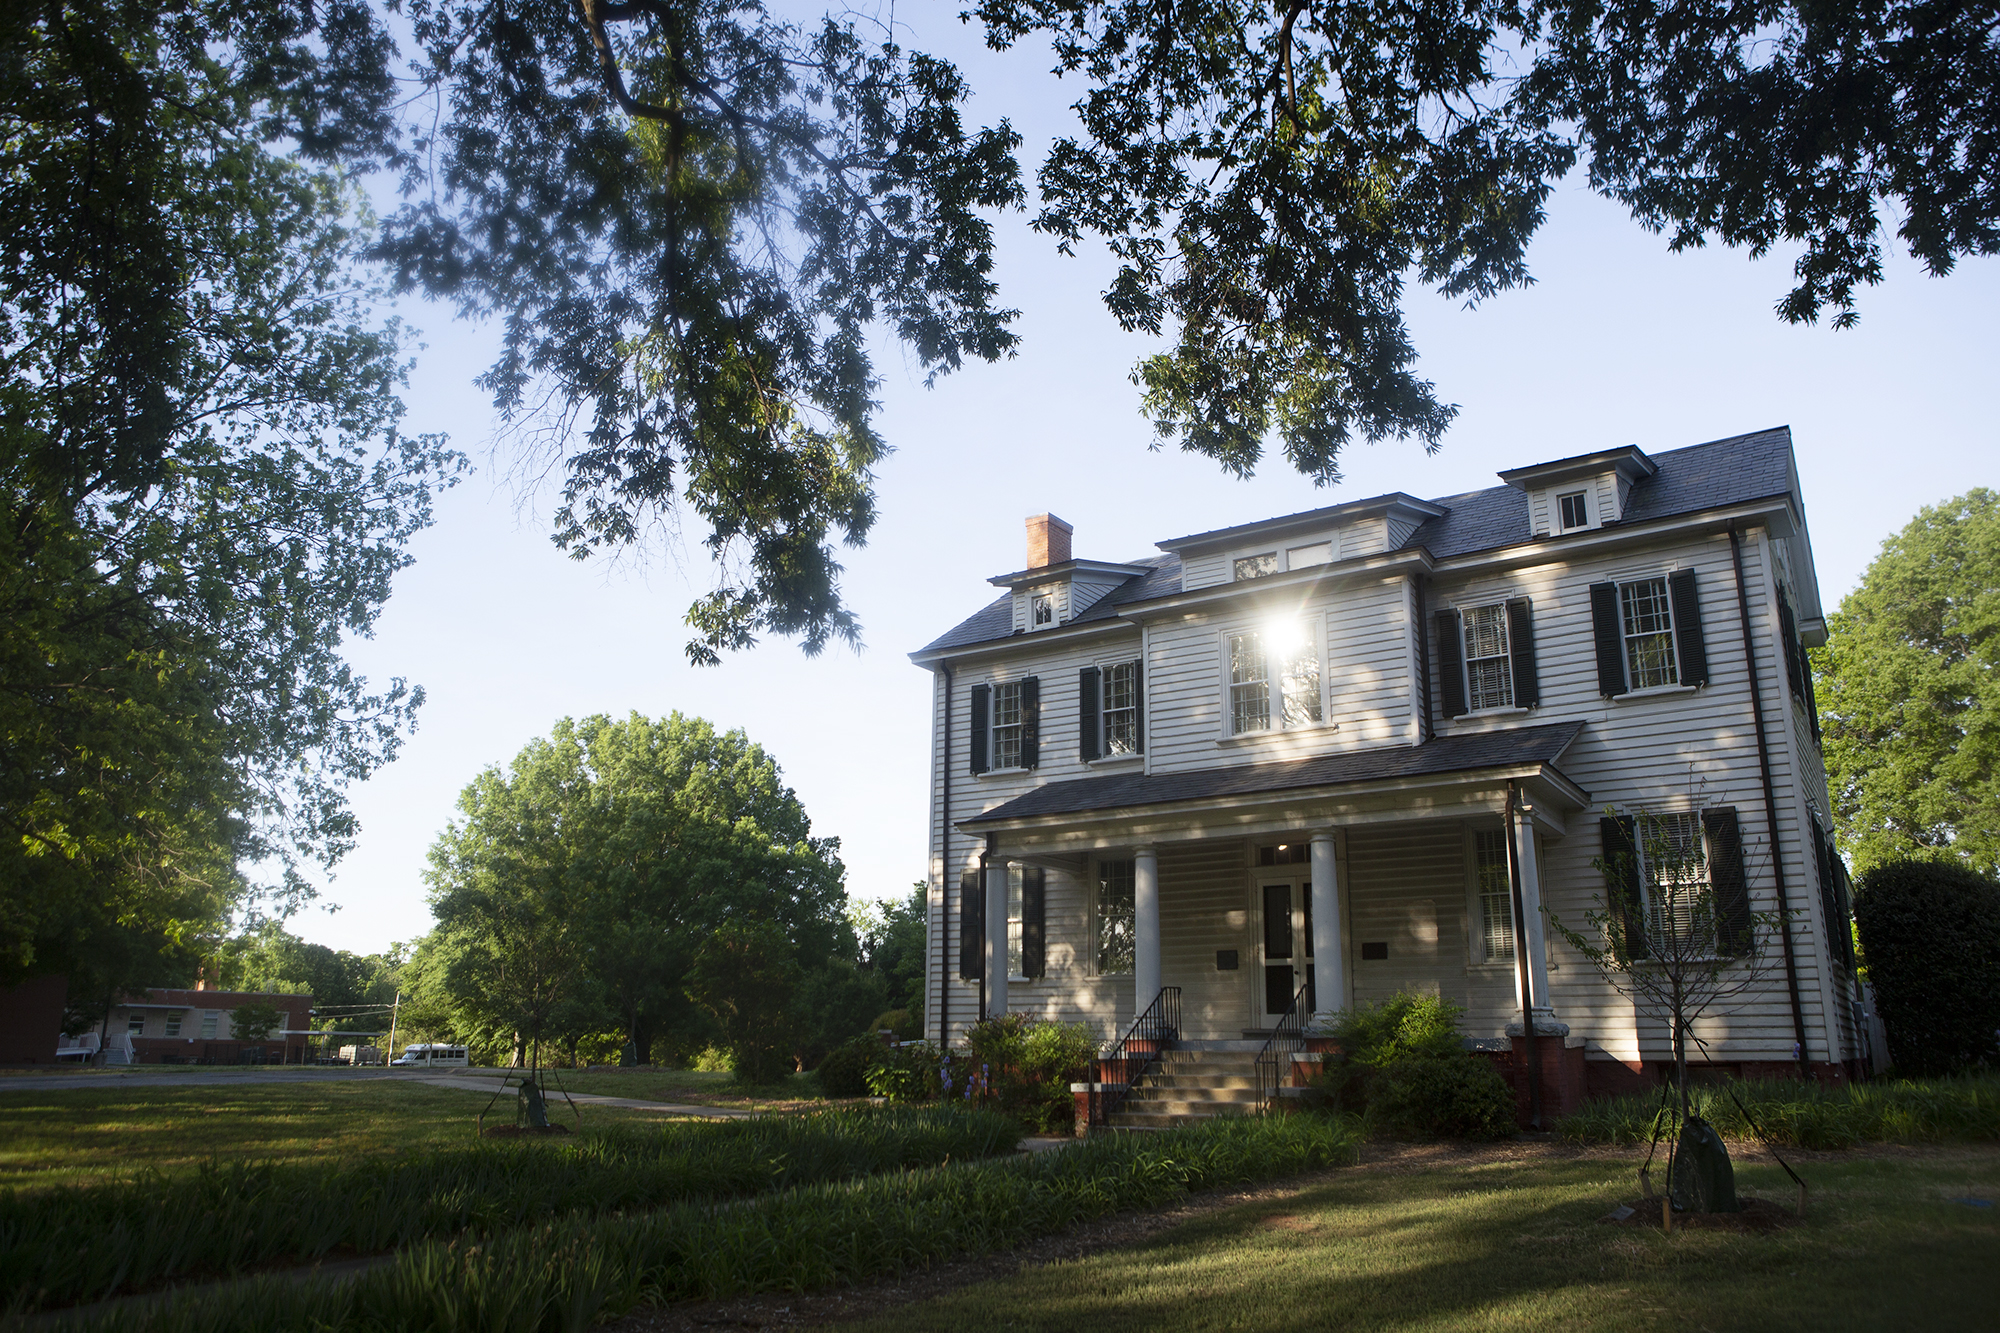 Photo of the Spring Hill Plantation House.